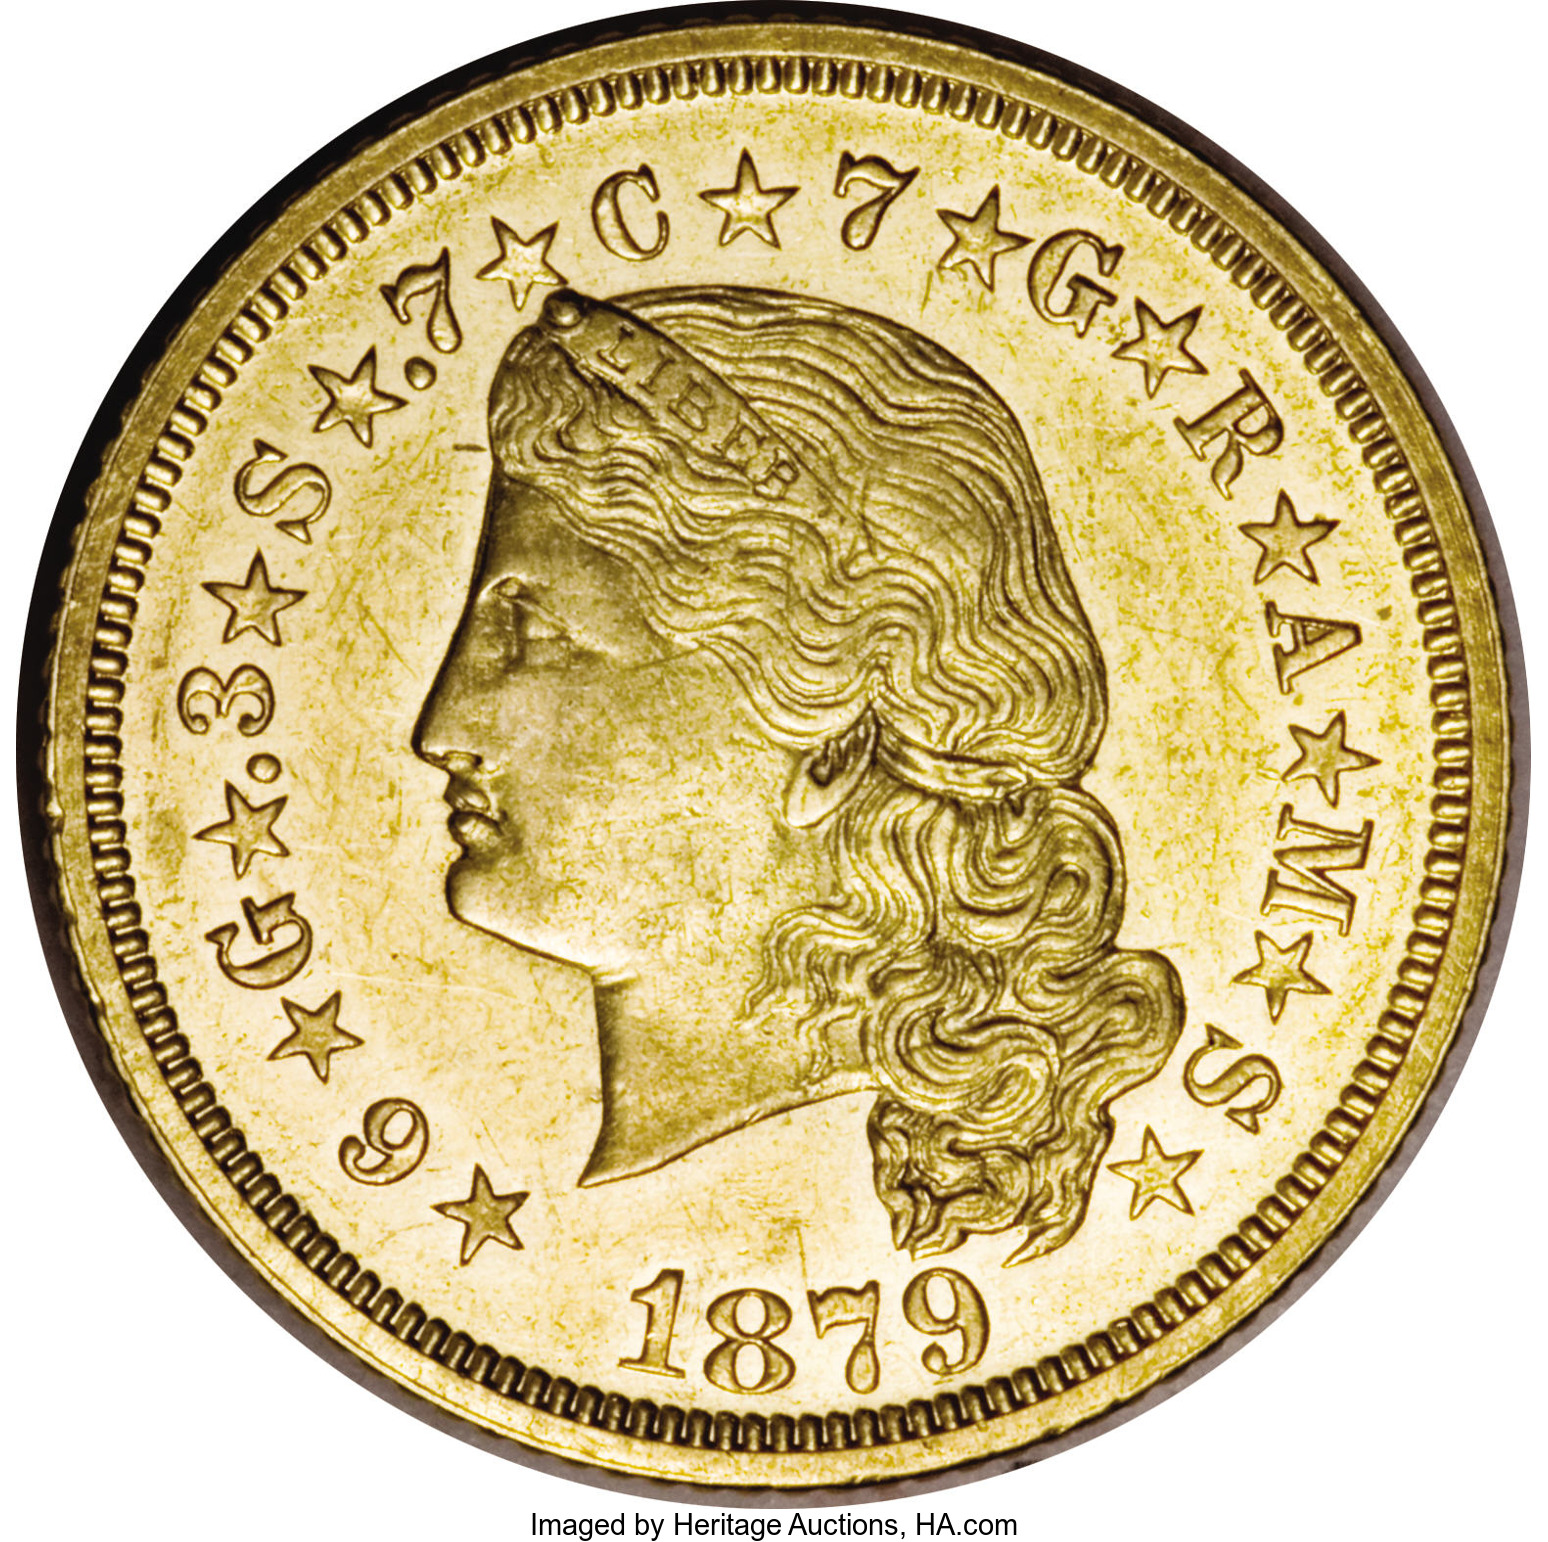 With a mintage of slightly more than 400 pieces, the 1879 Flowing Hair Stella is the most common $4 gold piece.